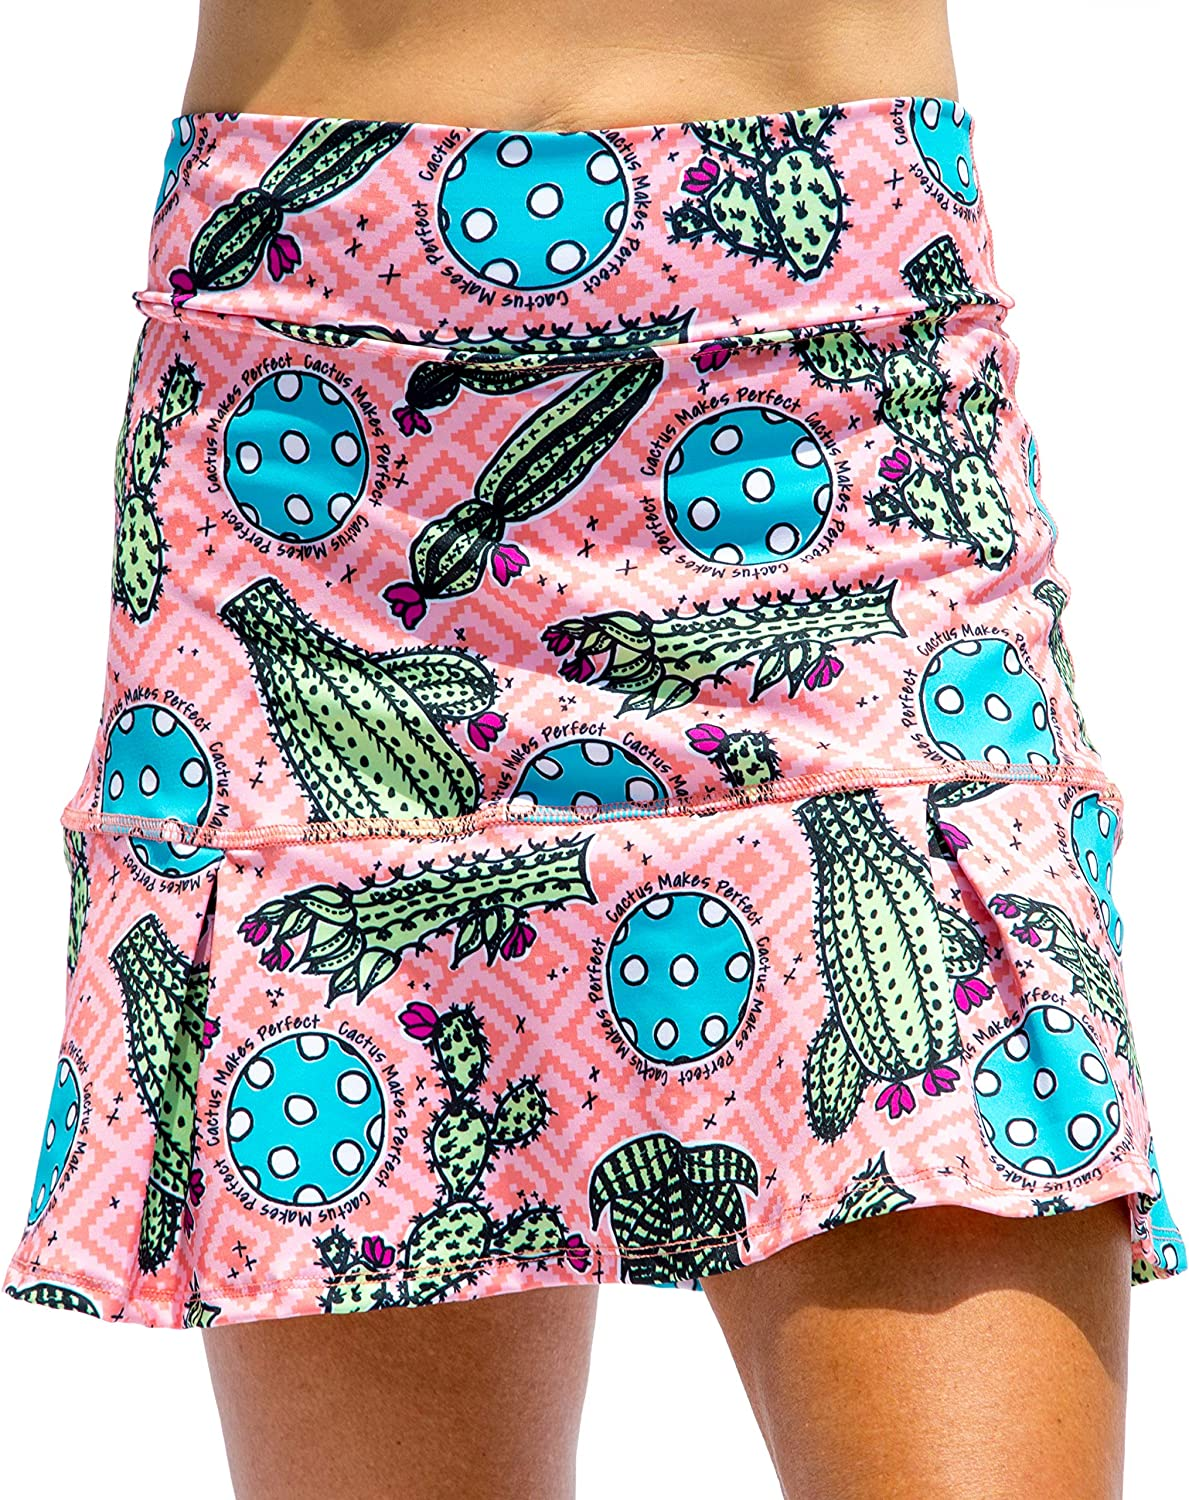 San Antonio Mall Pickleball Bella Cactus 1 We OFFer at cheap prices Drop Pleat and in Green Pink B Skort